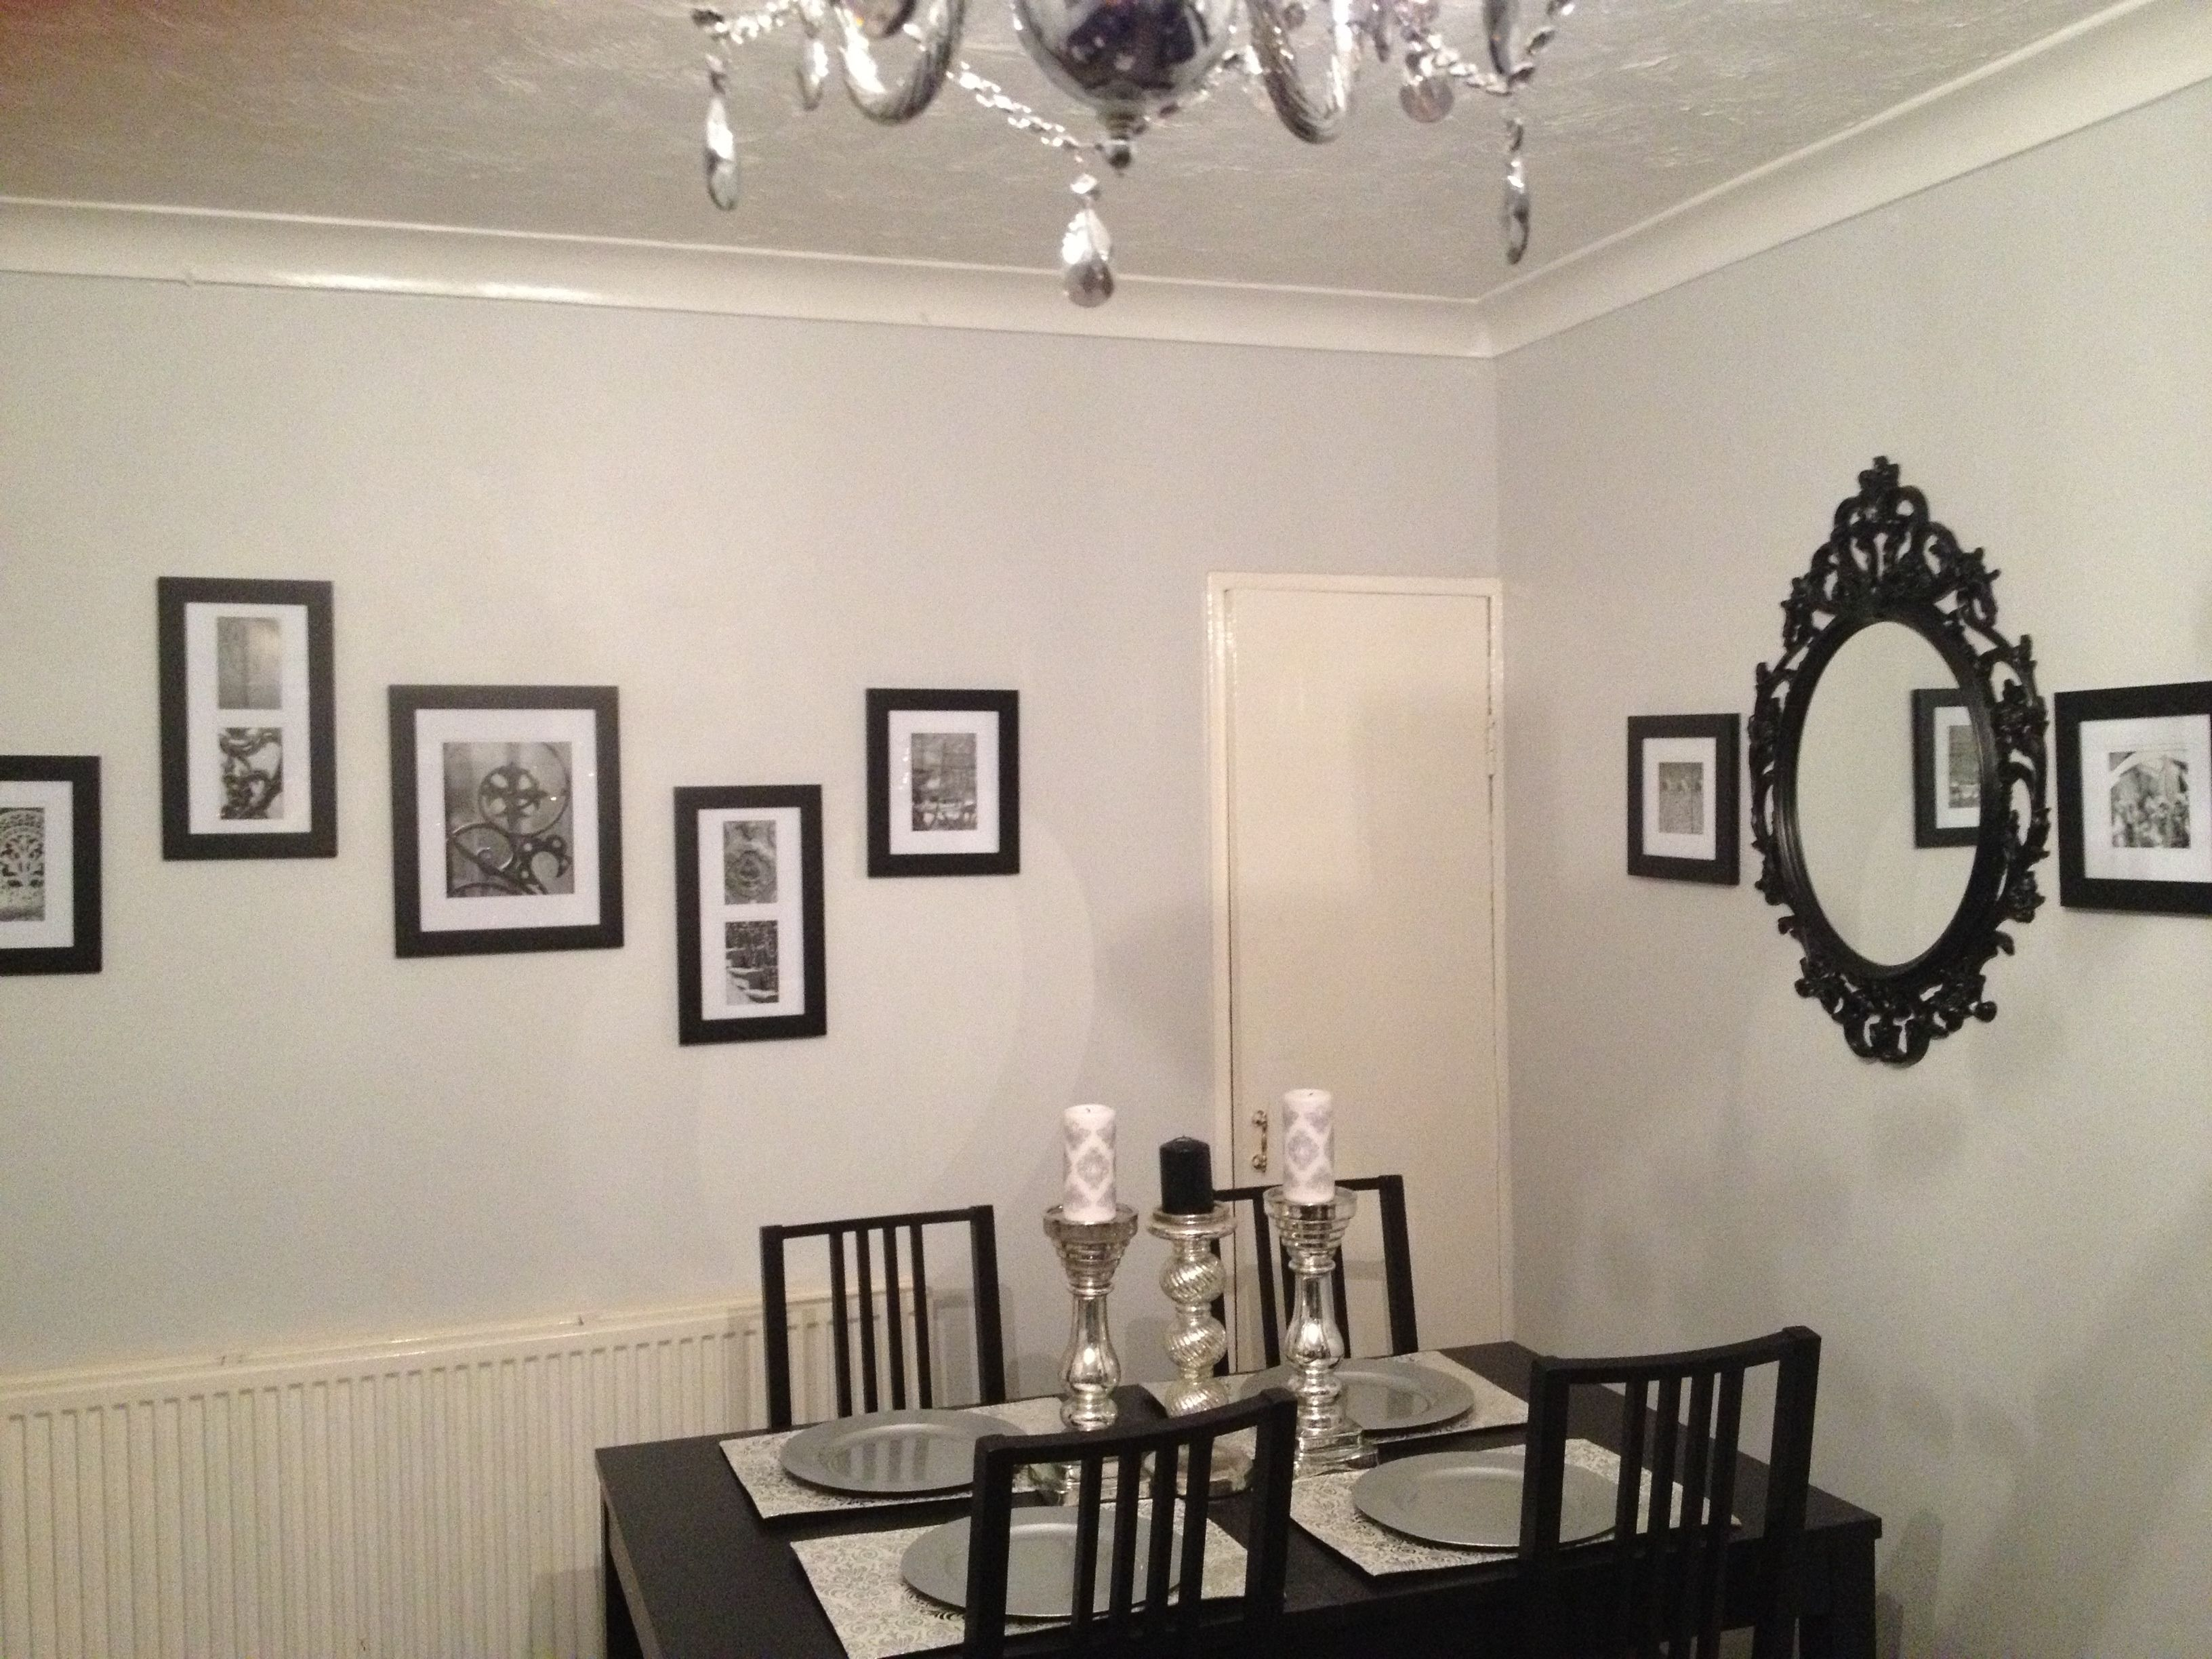 Living Room Wall Gallery Ikea Ung Drill Mirror And Frames Part 97